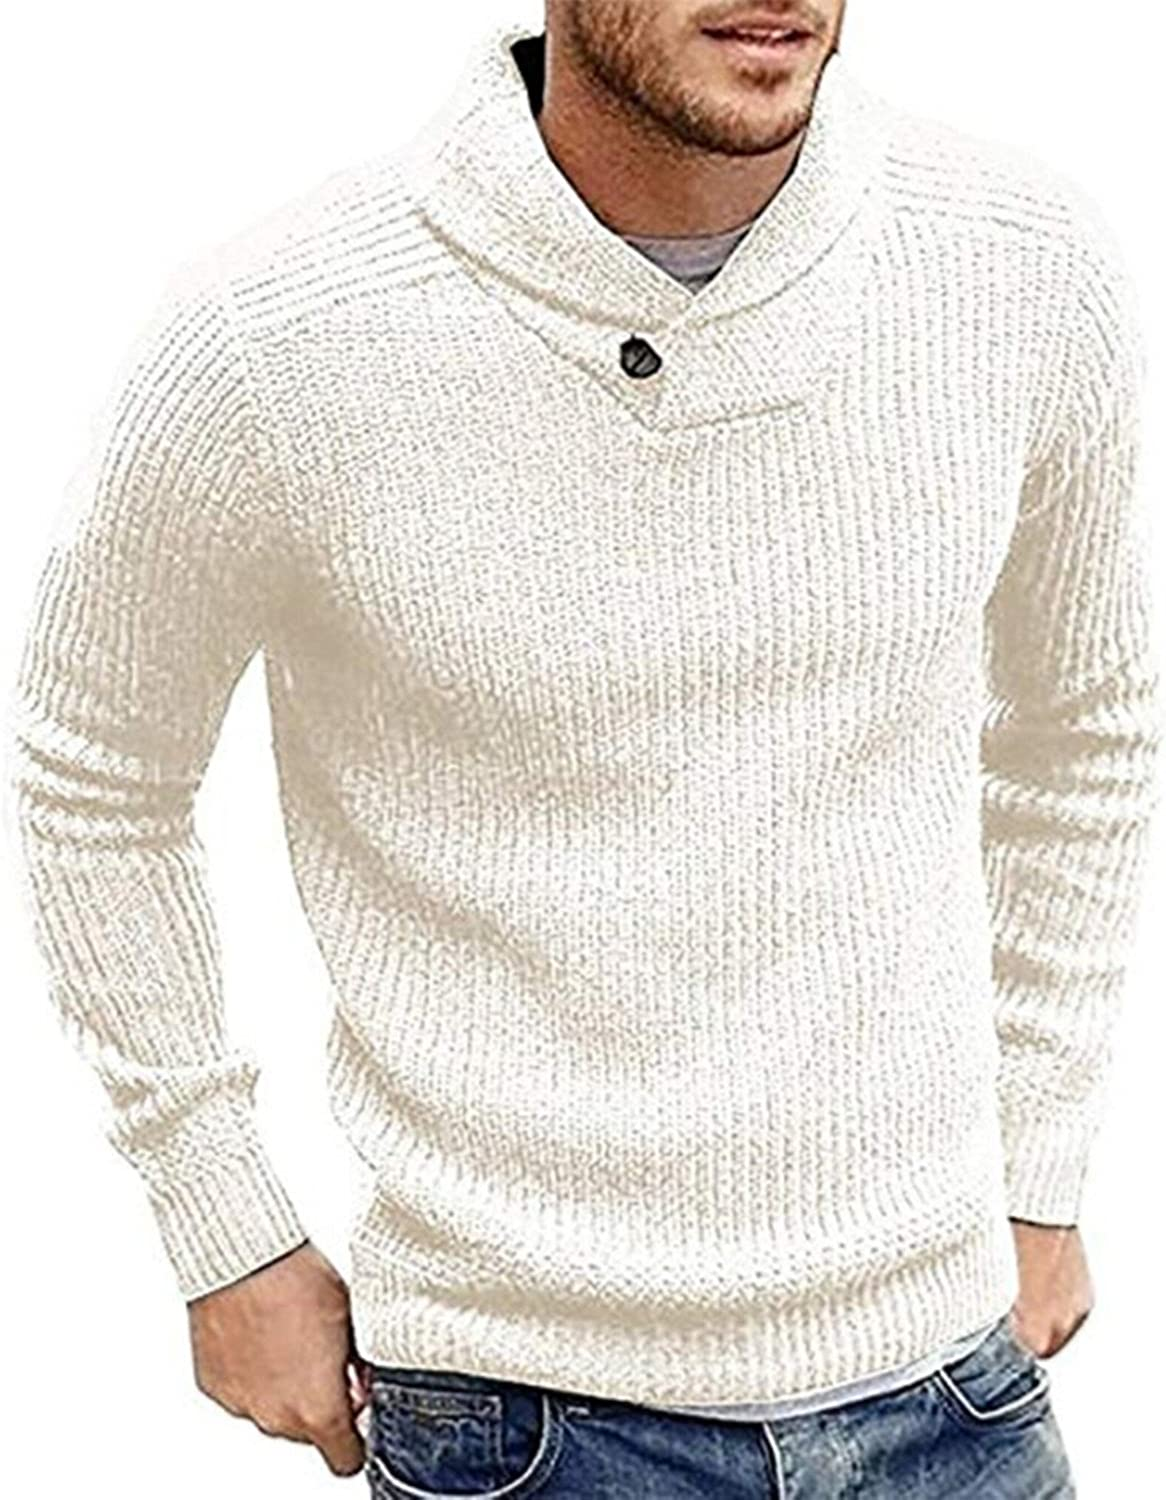 PASLTER Mens Knitted Sweaters Shawl Collar Slim Fit Pullover Long Sleeve Outwear Fall Winter Casual Knit Sweater